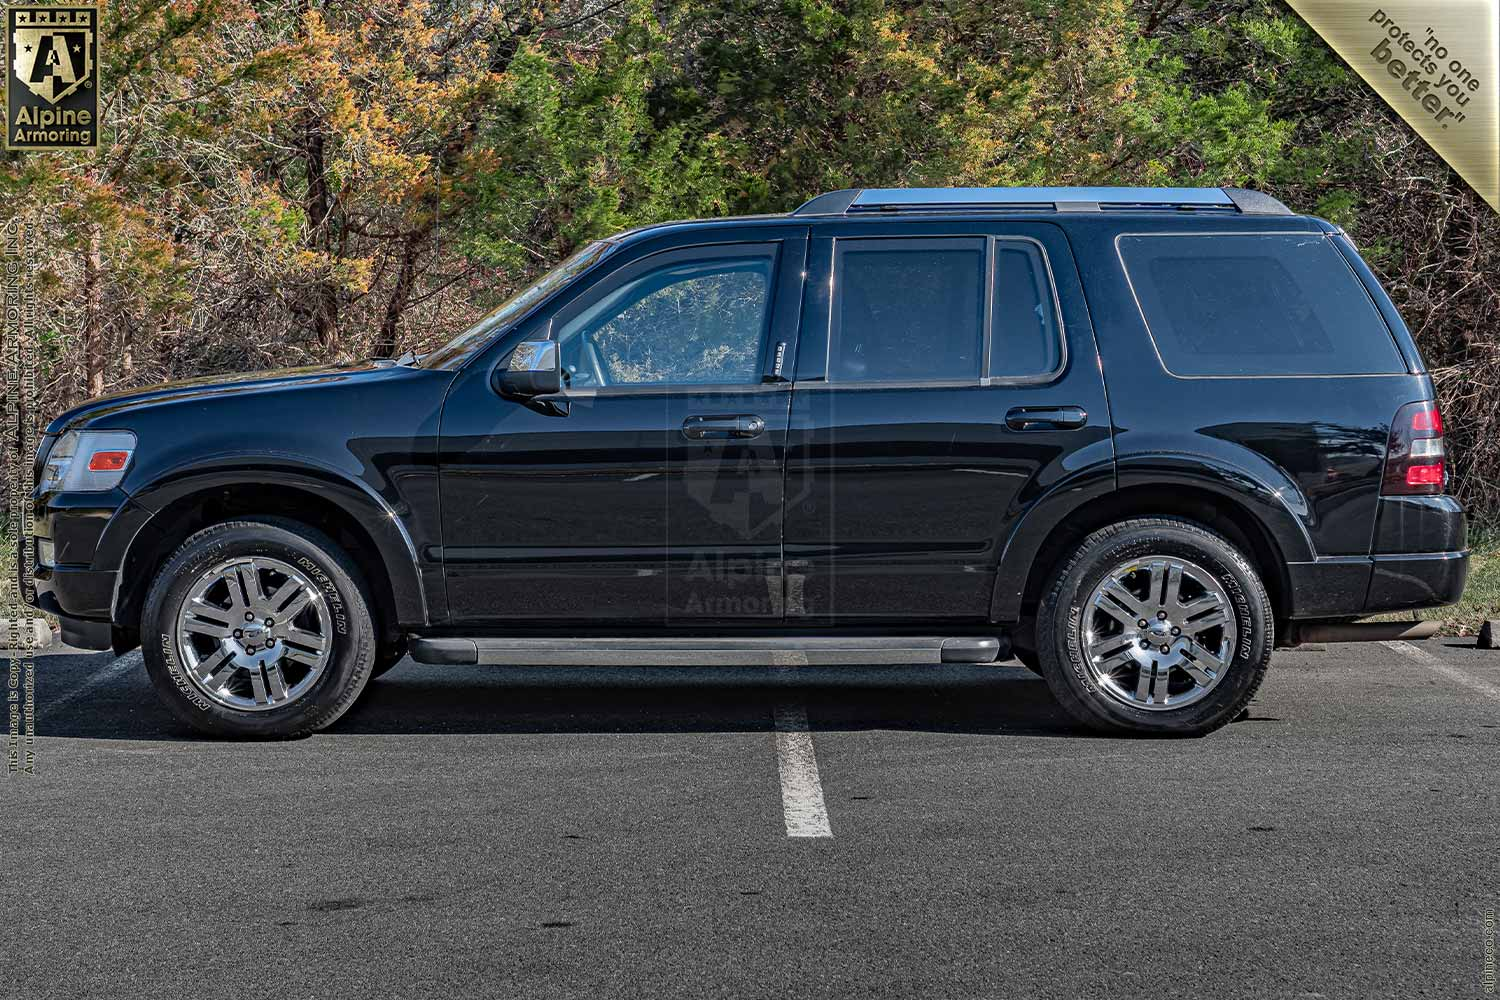 USED Inventory SUV Ford Explorer VIN:6906 Exterior Interior Images